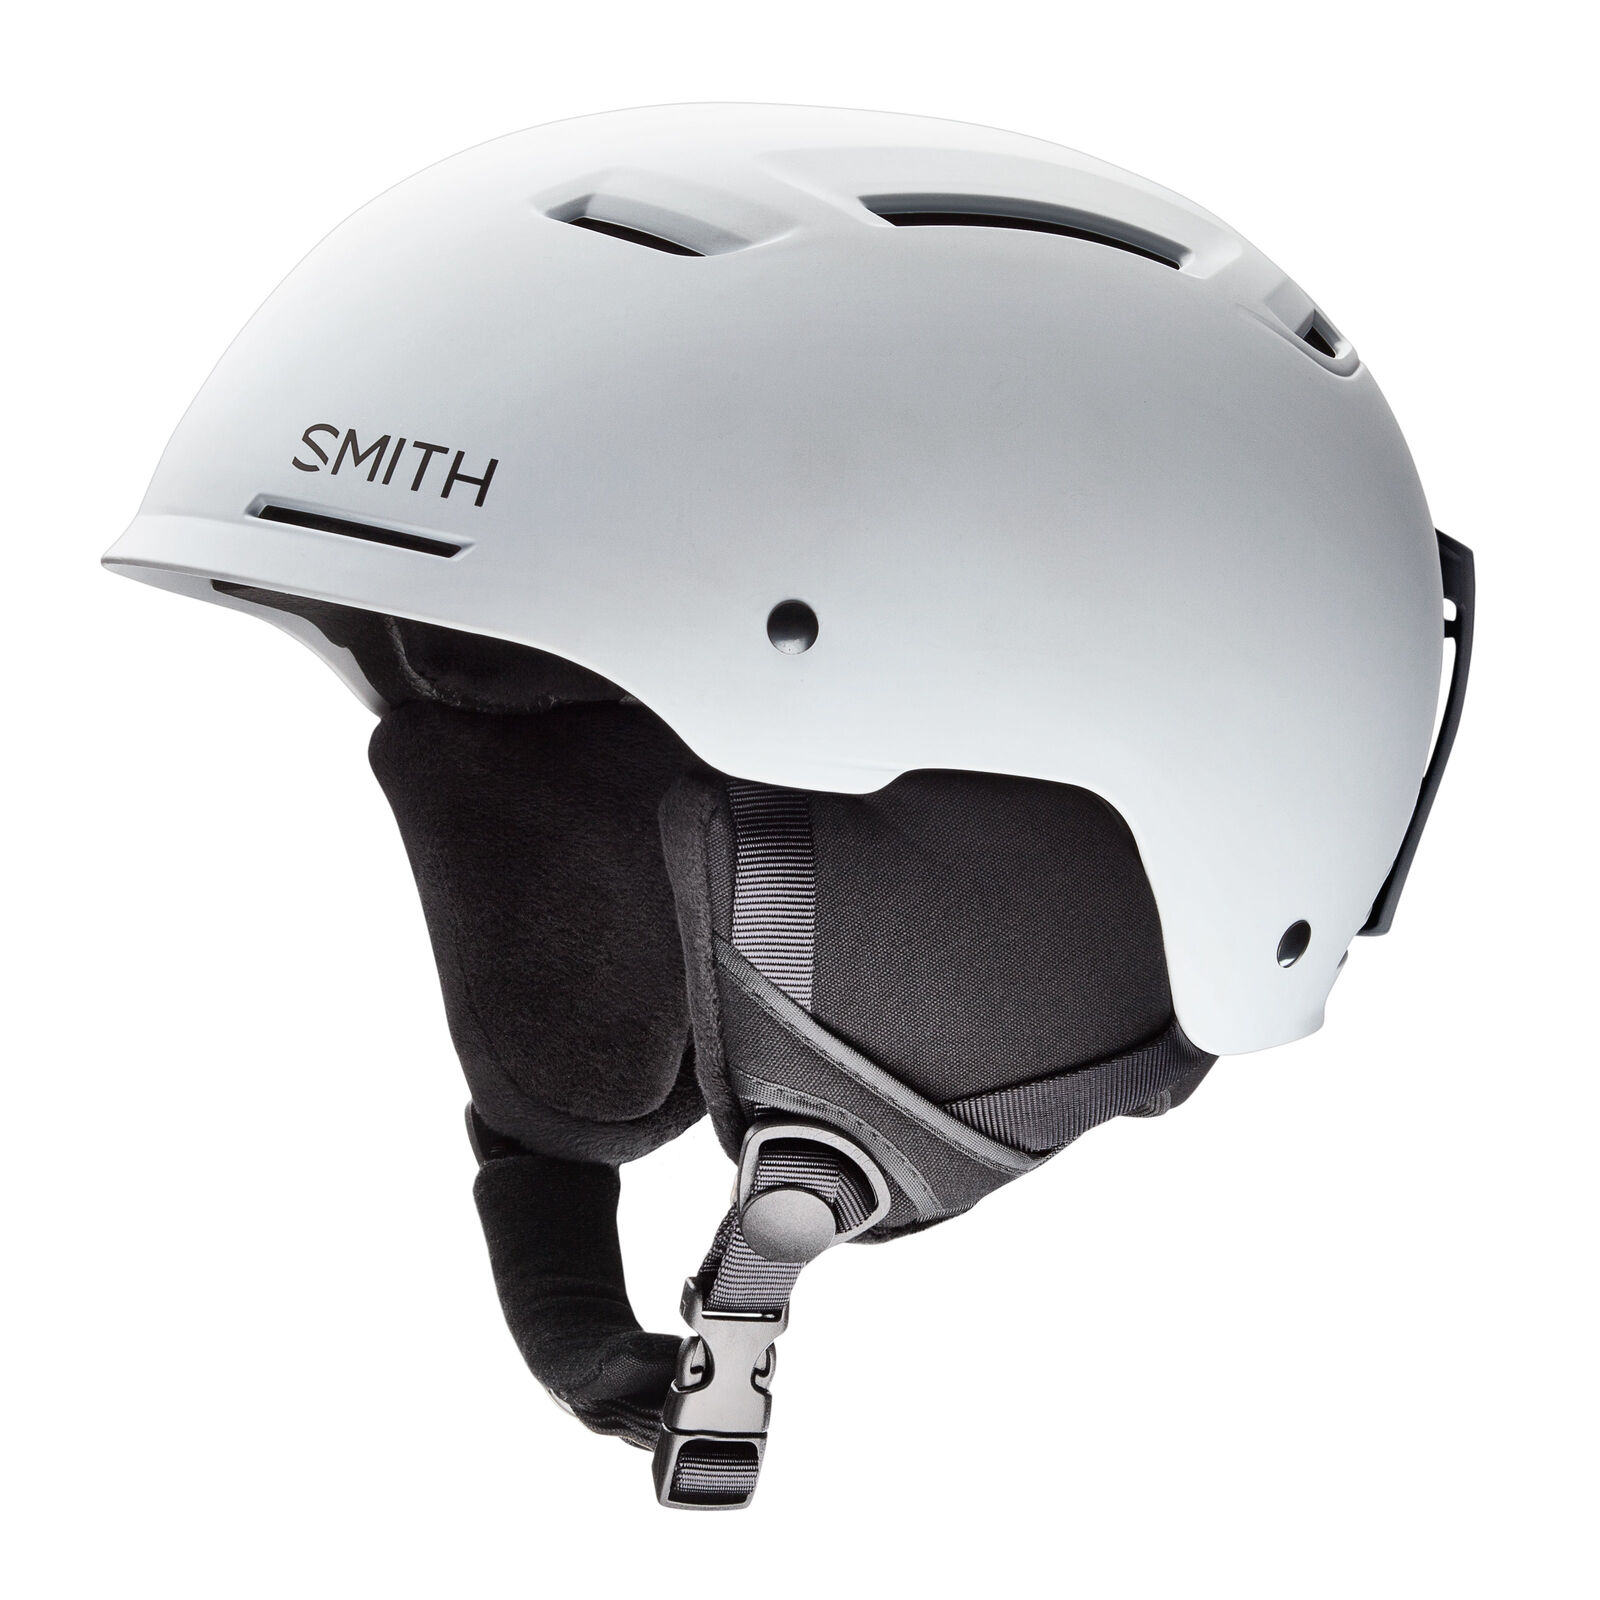 Smith Ski Helmet Snowboard Helmet Pivot White Plain Colour Size Adjustable